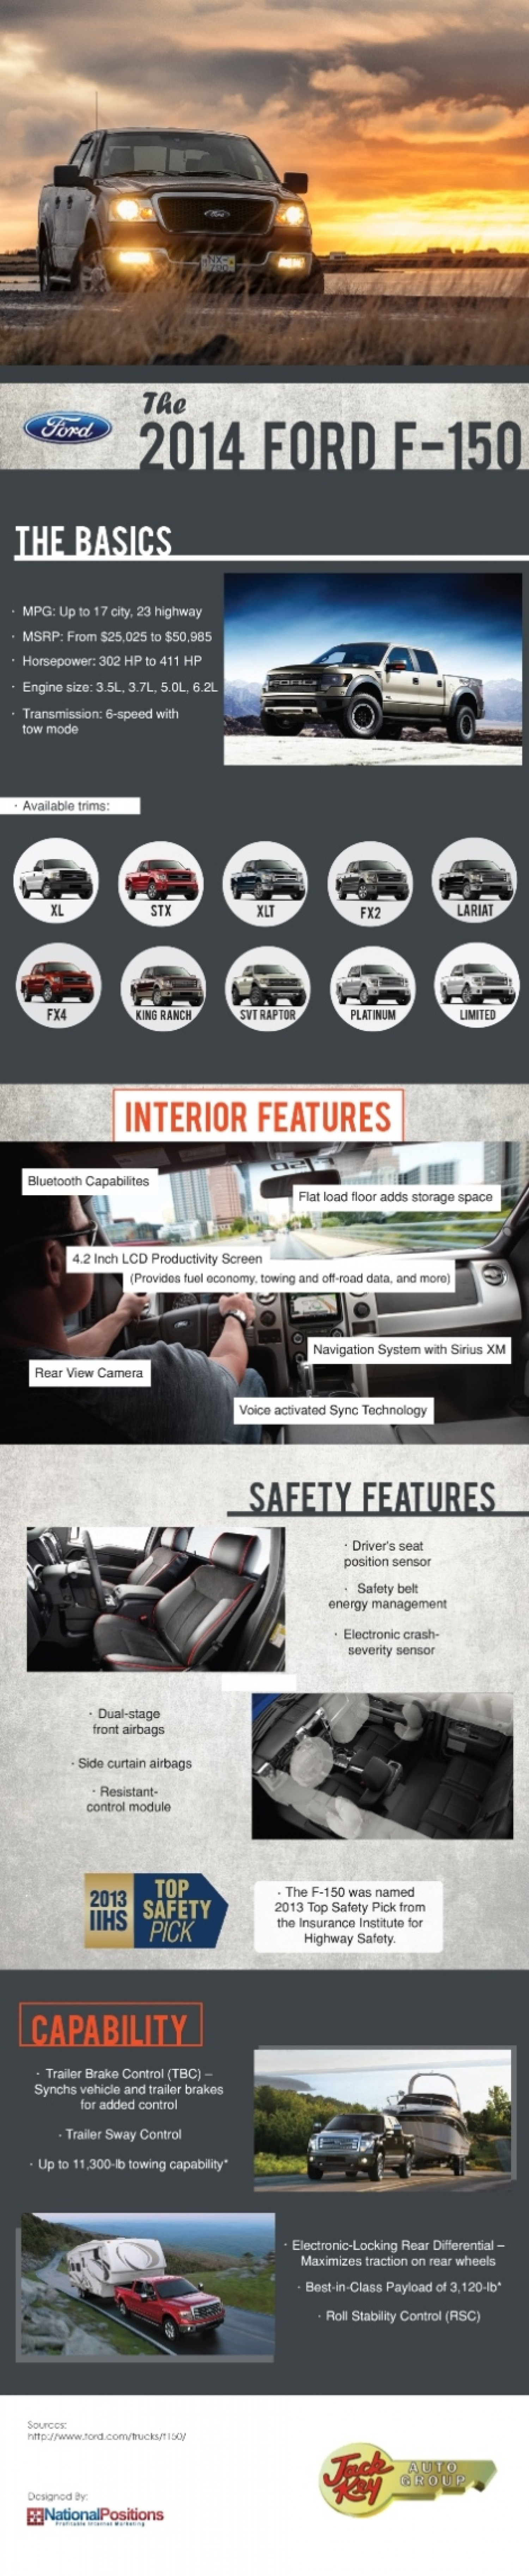 The 2014 Ford F-150 Infographic